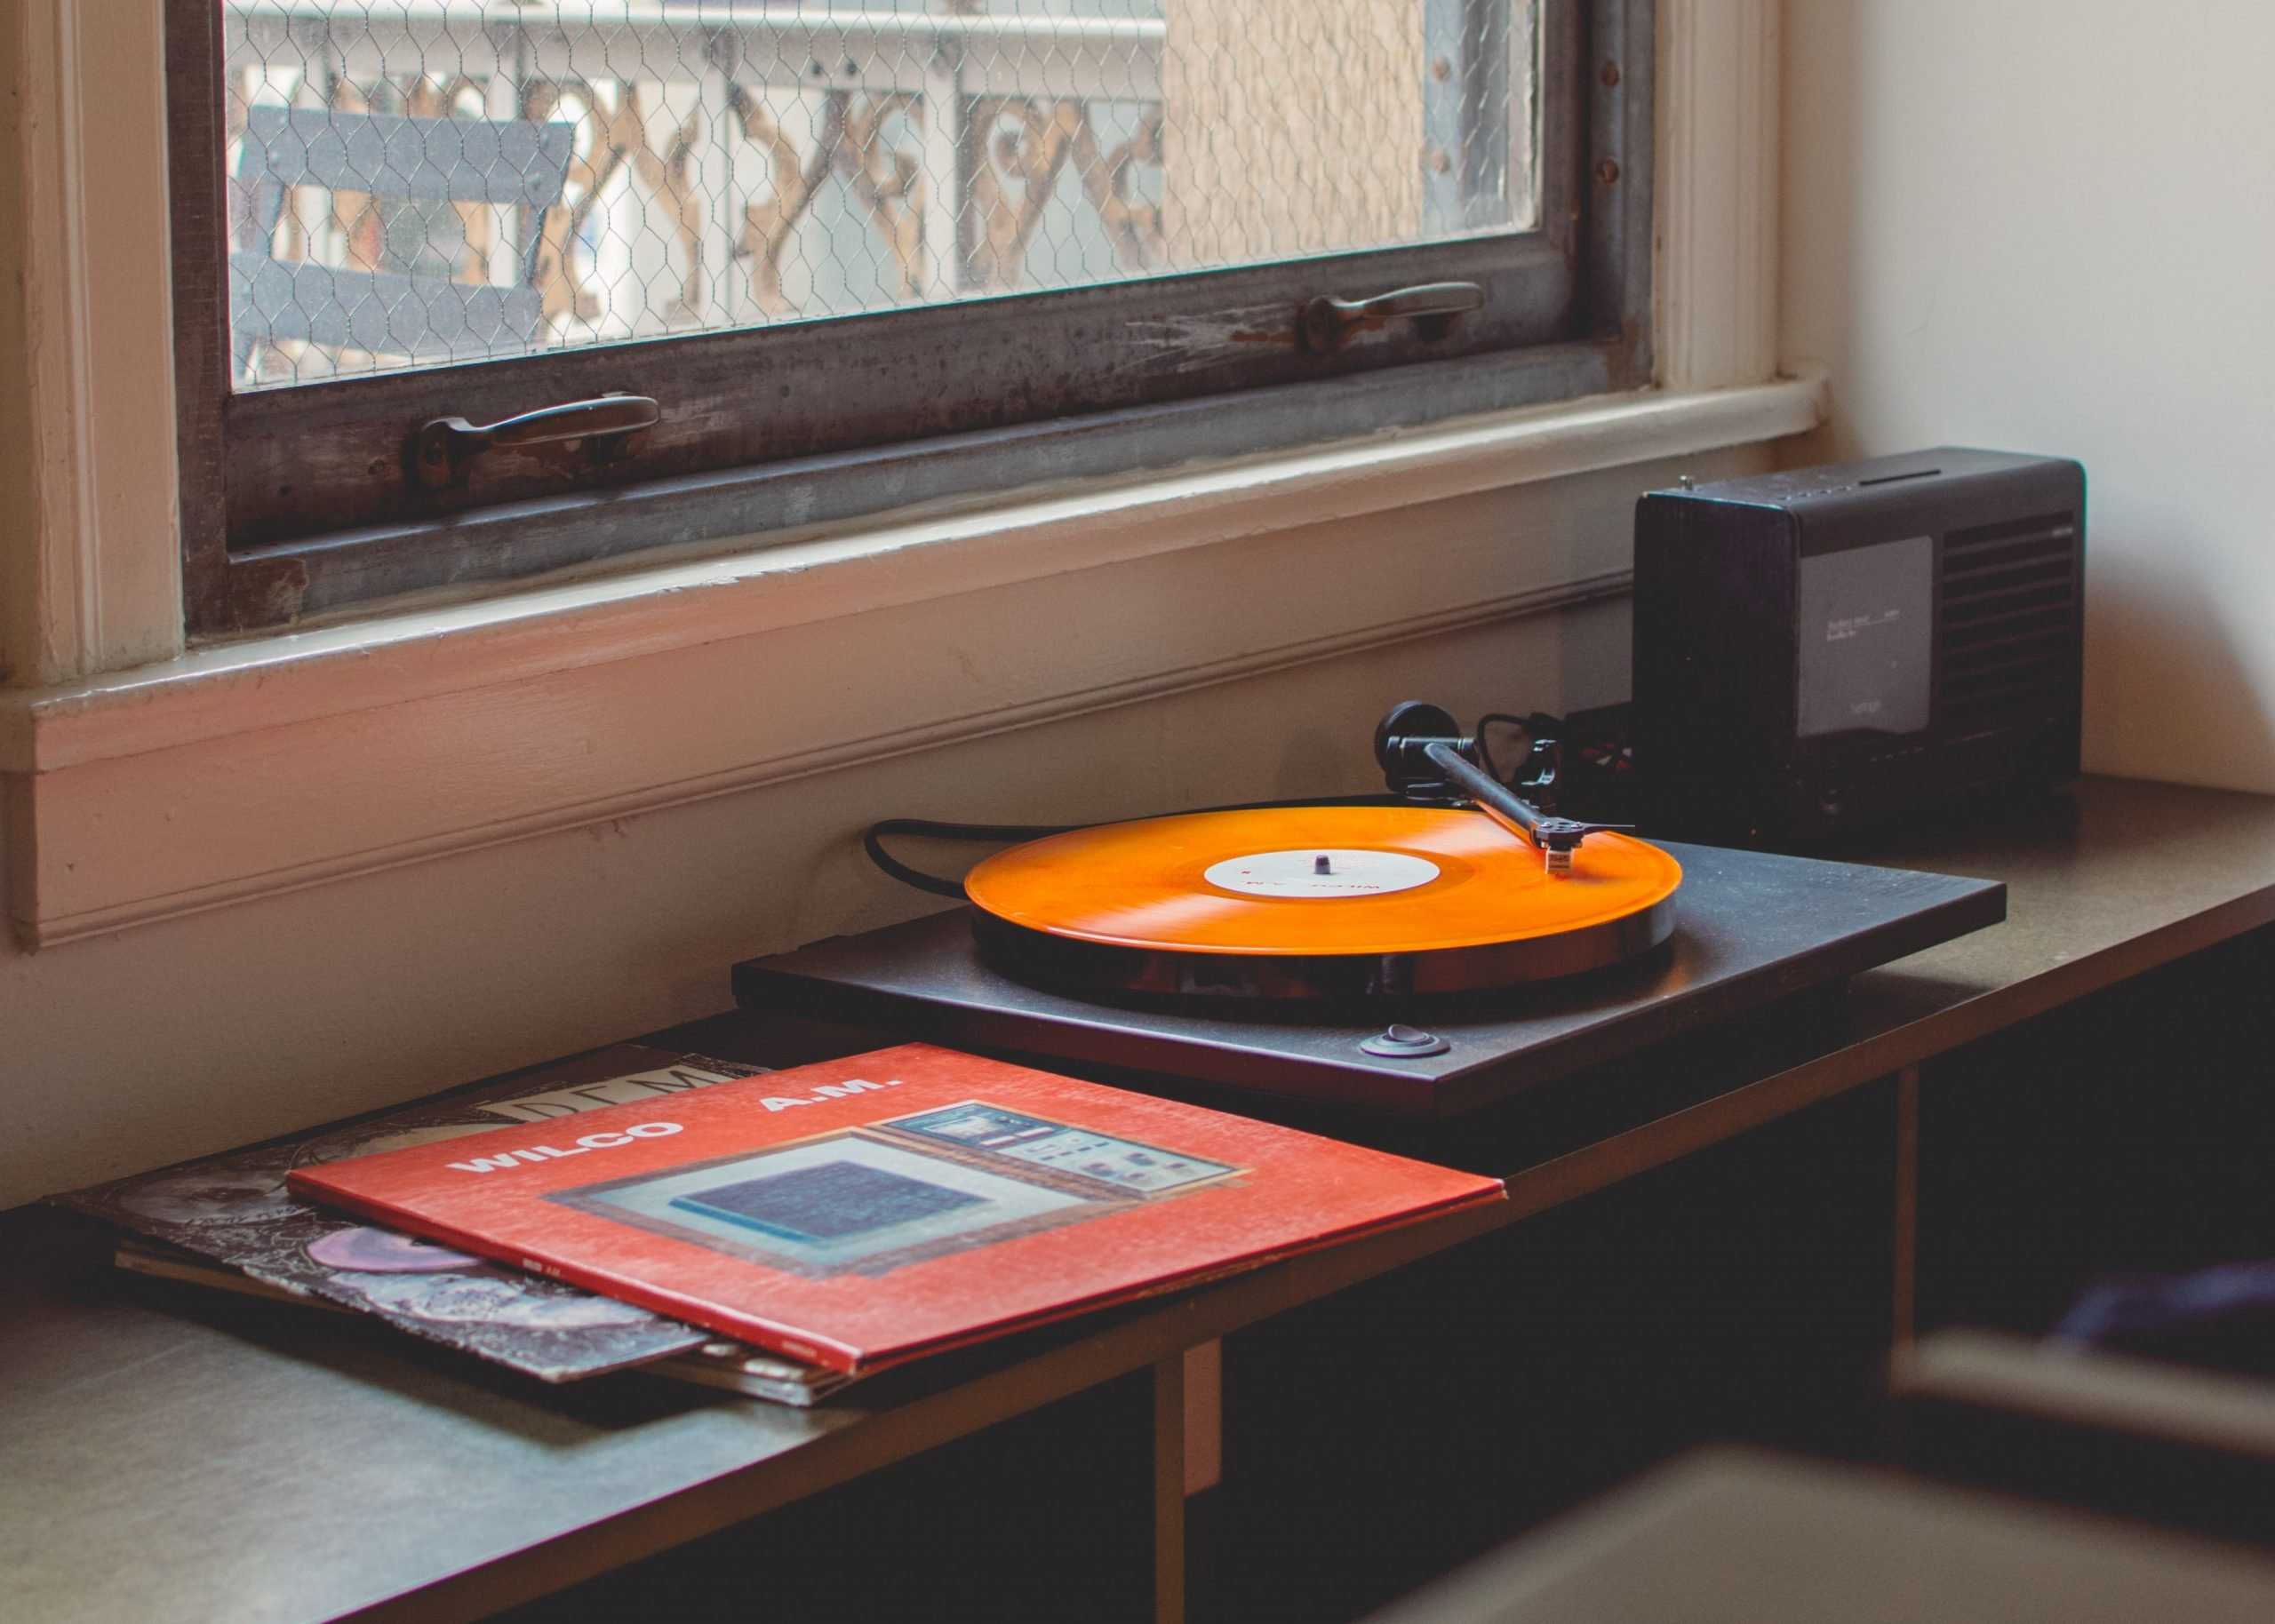 A reocrd player sitting on a table spinning an orange record